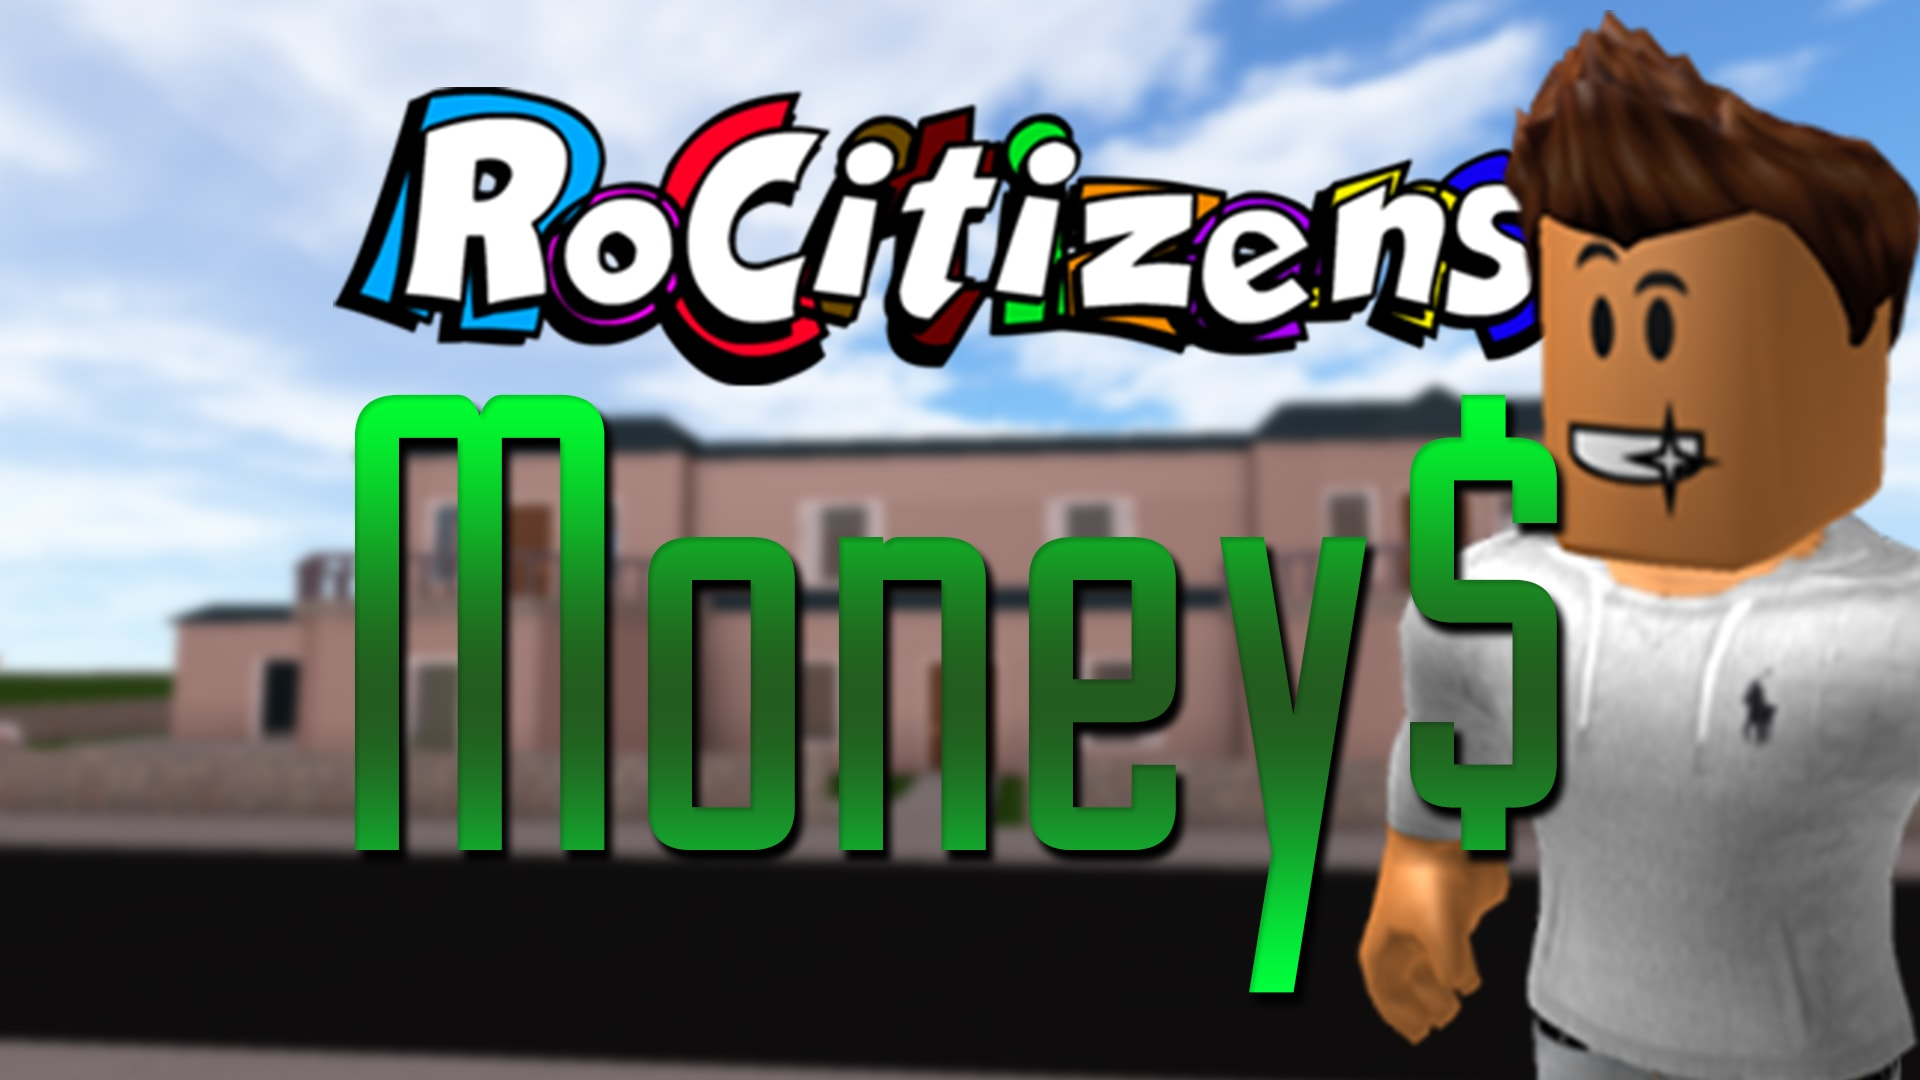 Give You Money On Rocitizens For A Small Fee By Tylerjkljkl